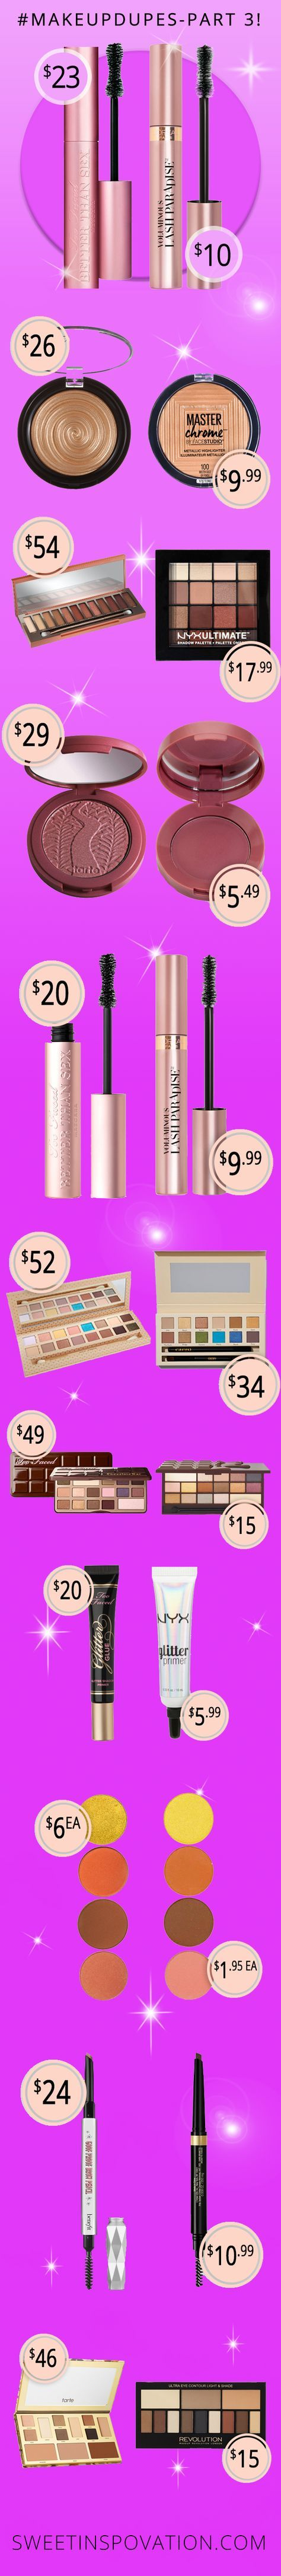 Popular Makeup Dupes from the Drugstore for Highend makeup! Part 3!